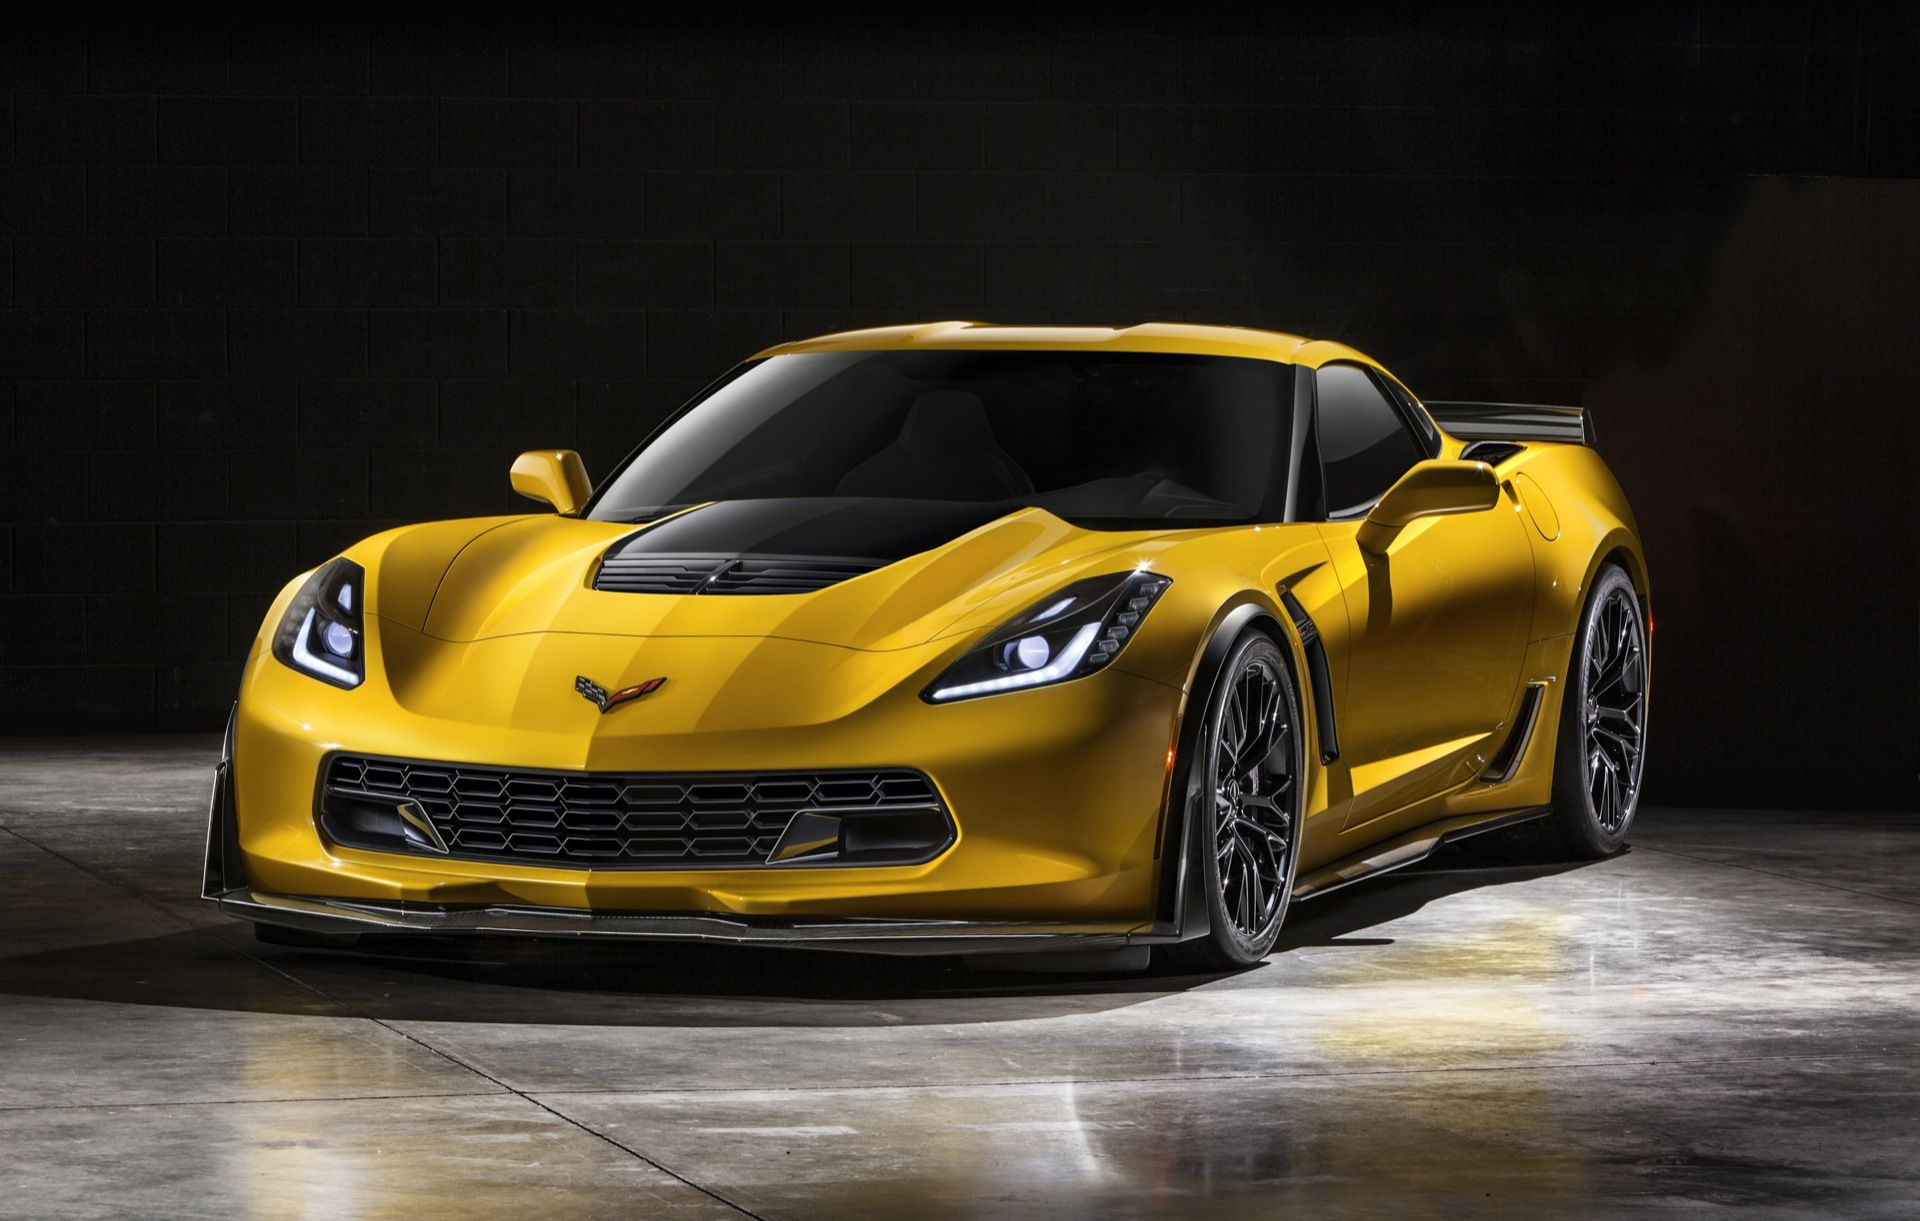 2015 Chevrolet Corvette Z06 Hits The Nurburgring Video See More